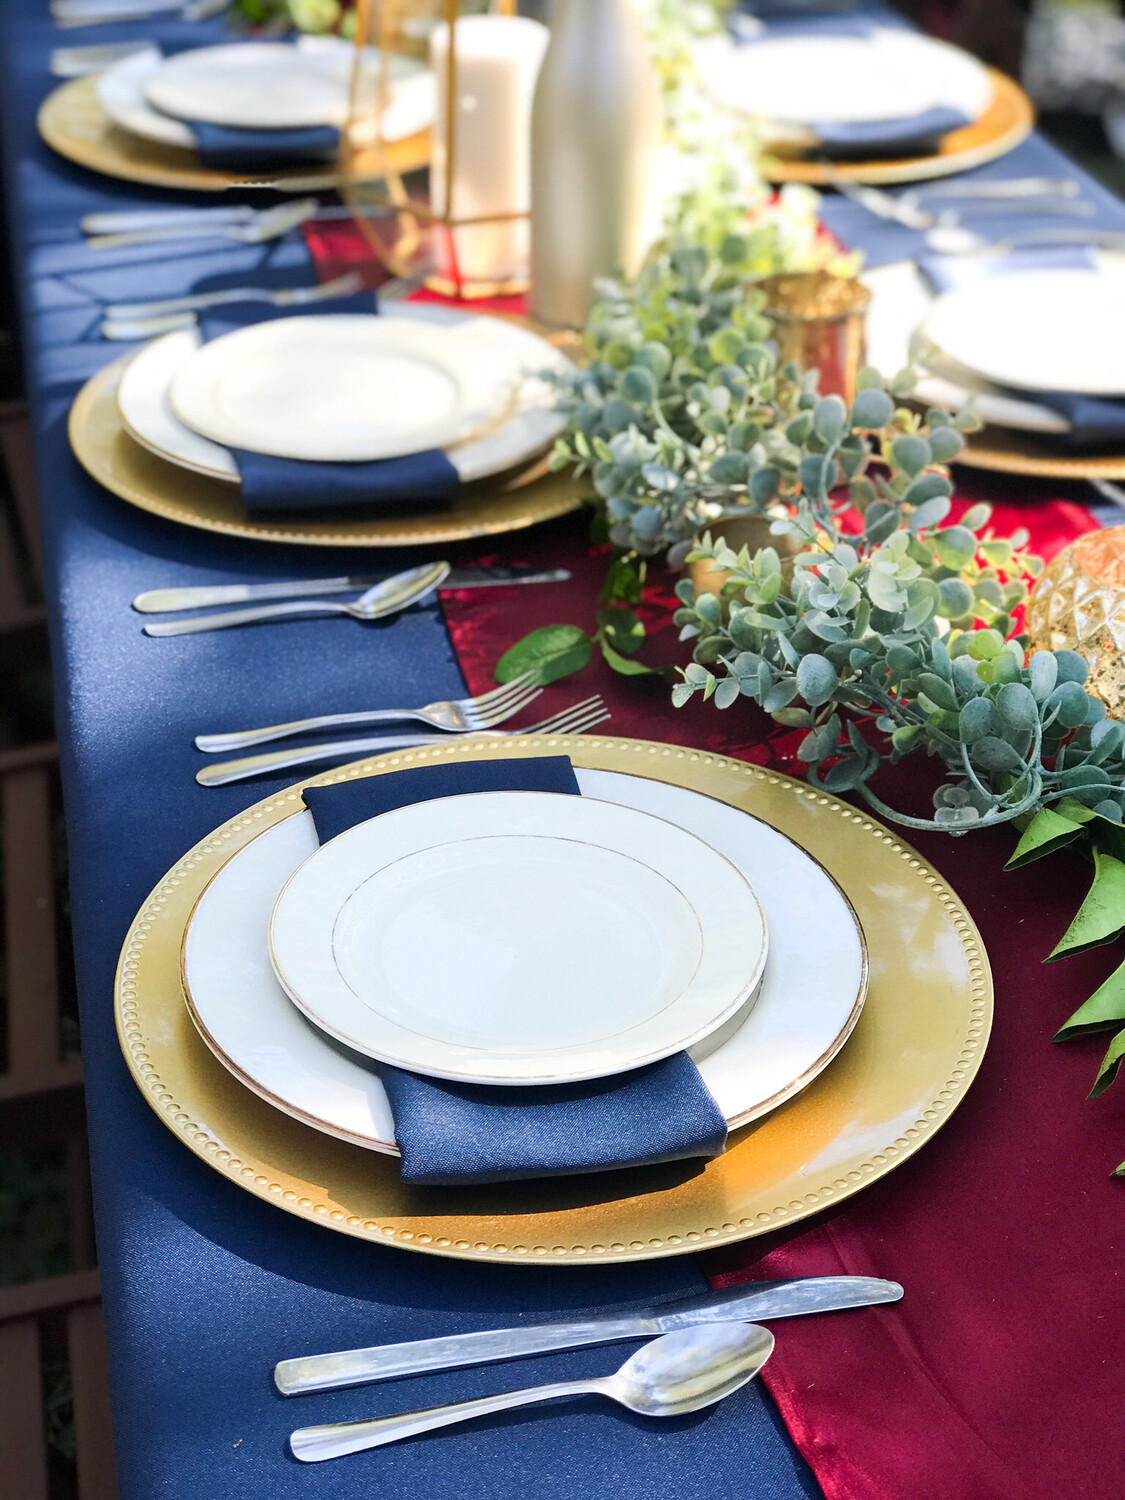 Gold- Dotted- Charger Plates